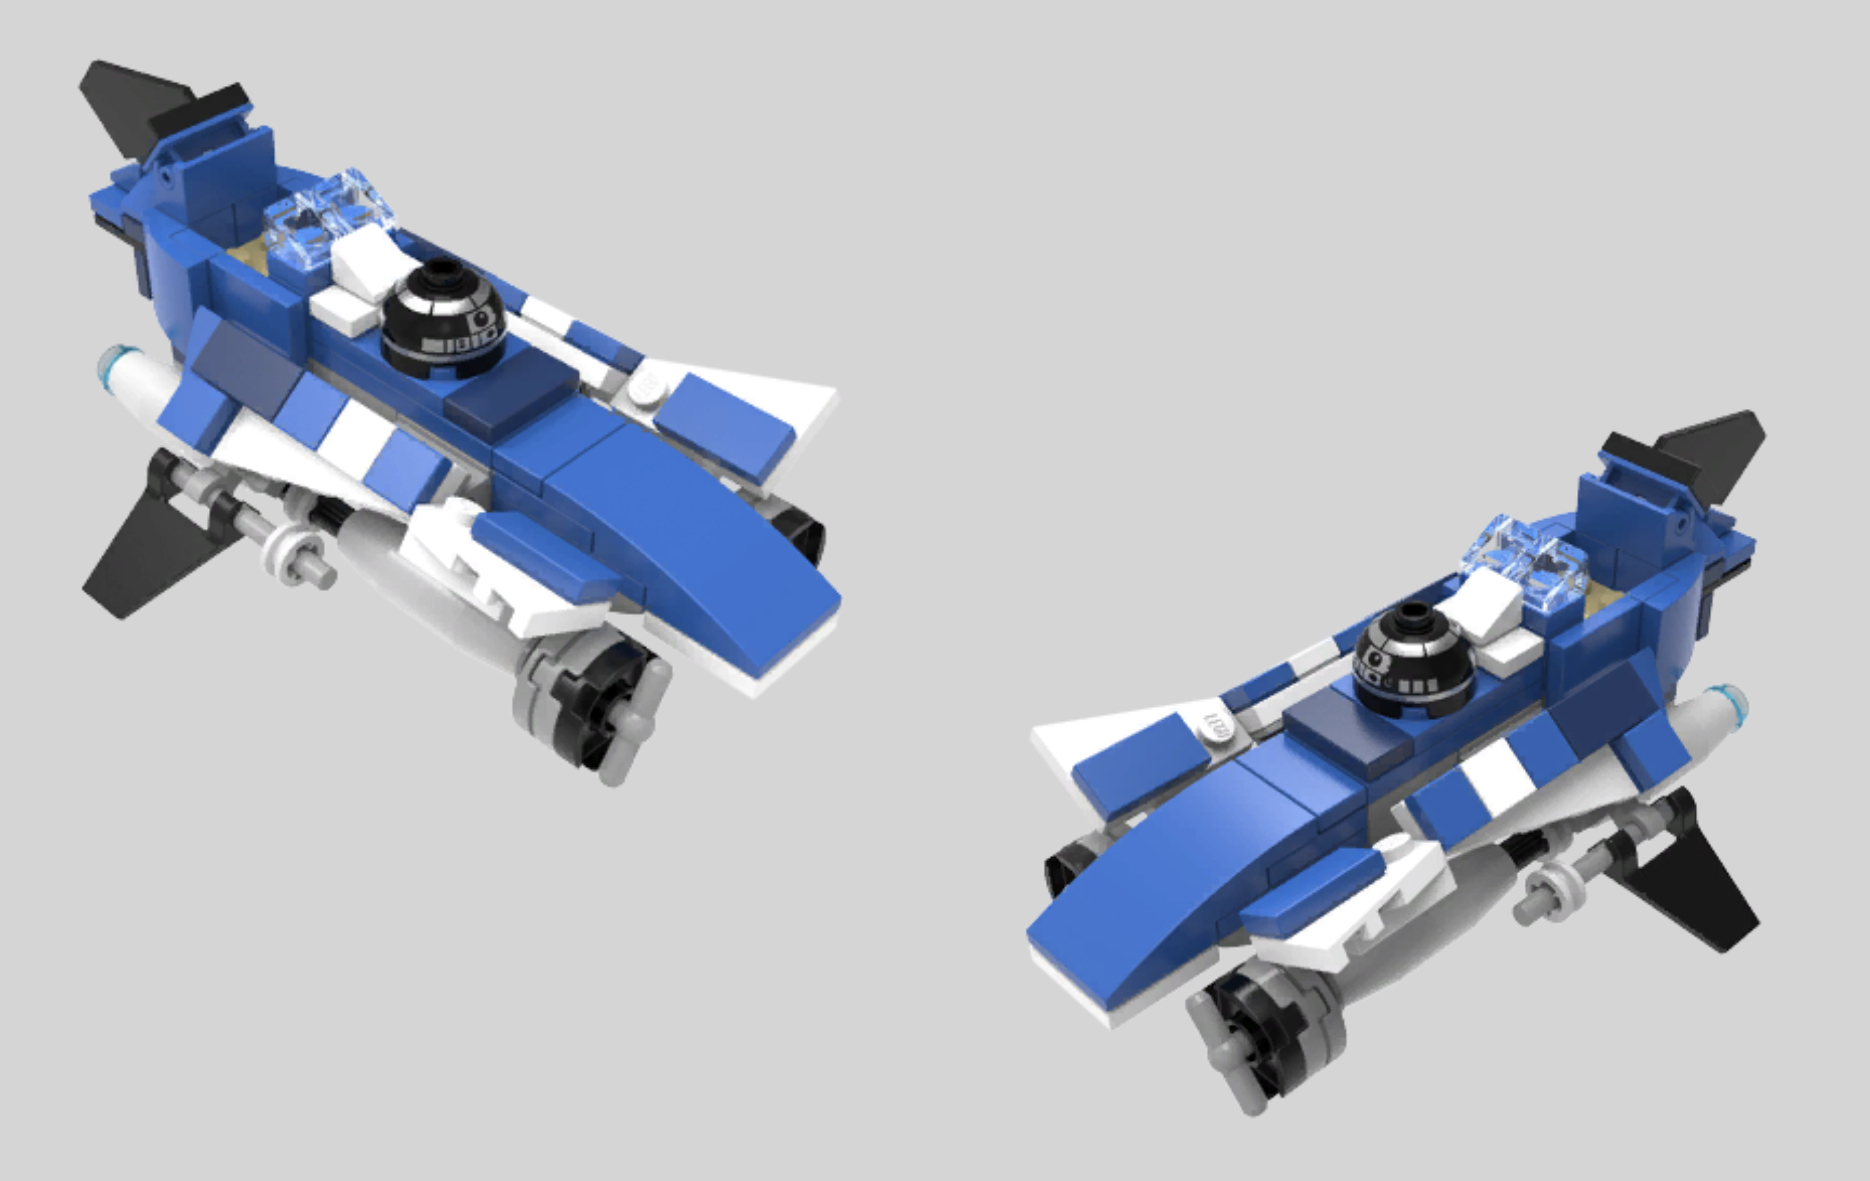 lego star wars microfighters azure angel